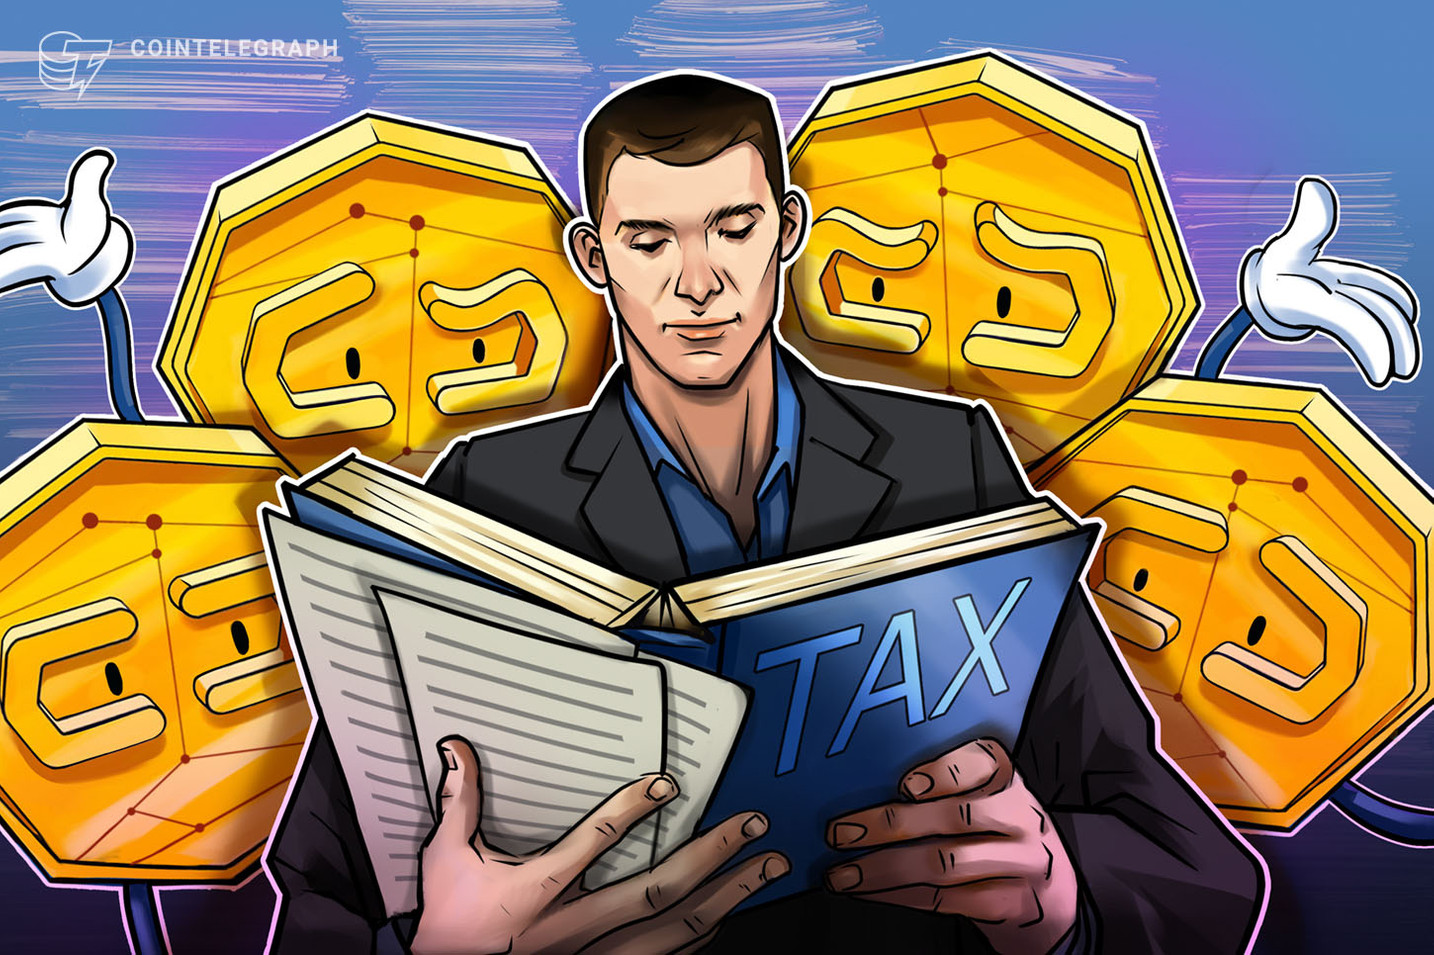 US-based crypto users likely still have to pay taxes on NFTs, says CNBC